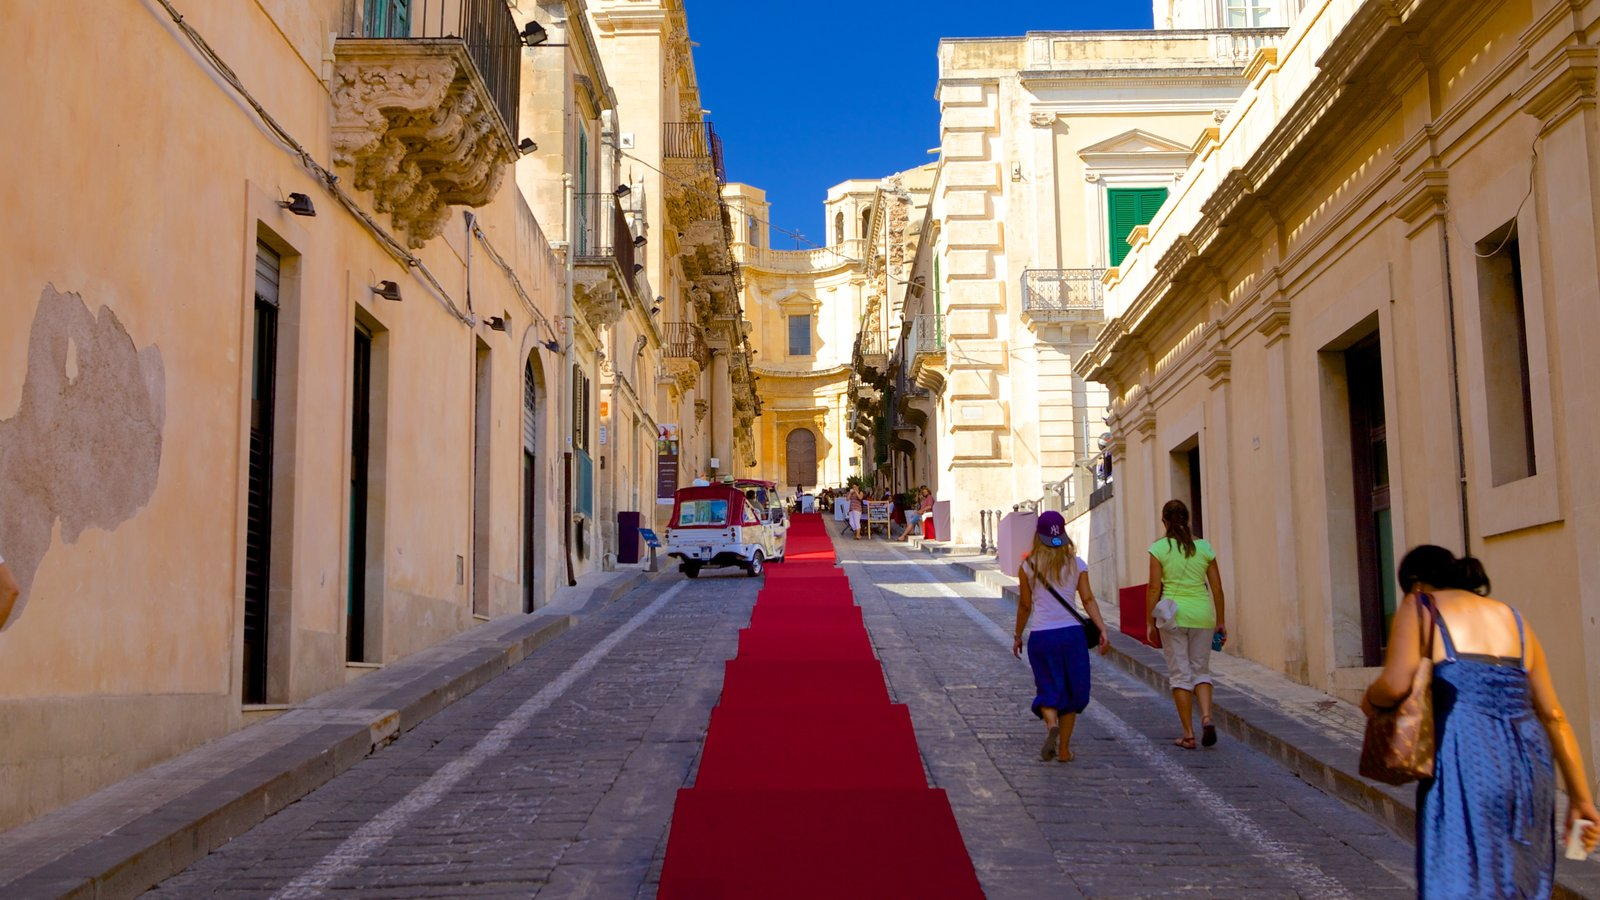 Noto showing street scenes and heritage architecture as well as a small group of people